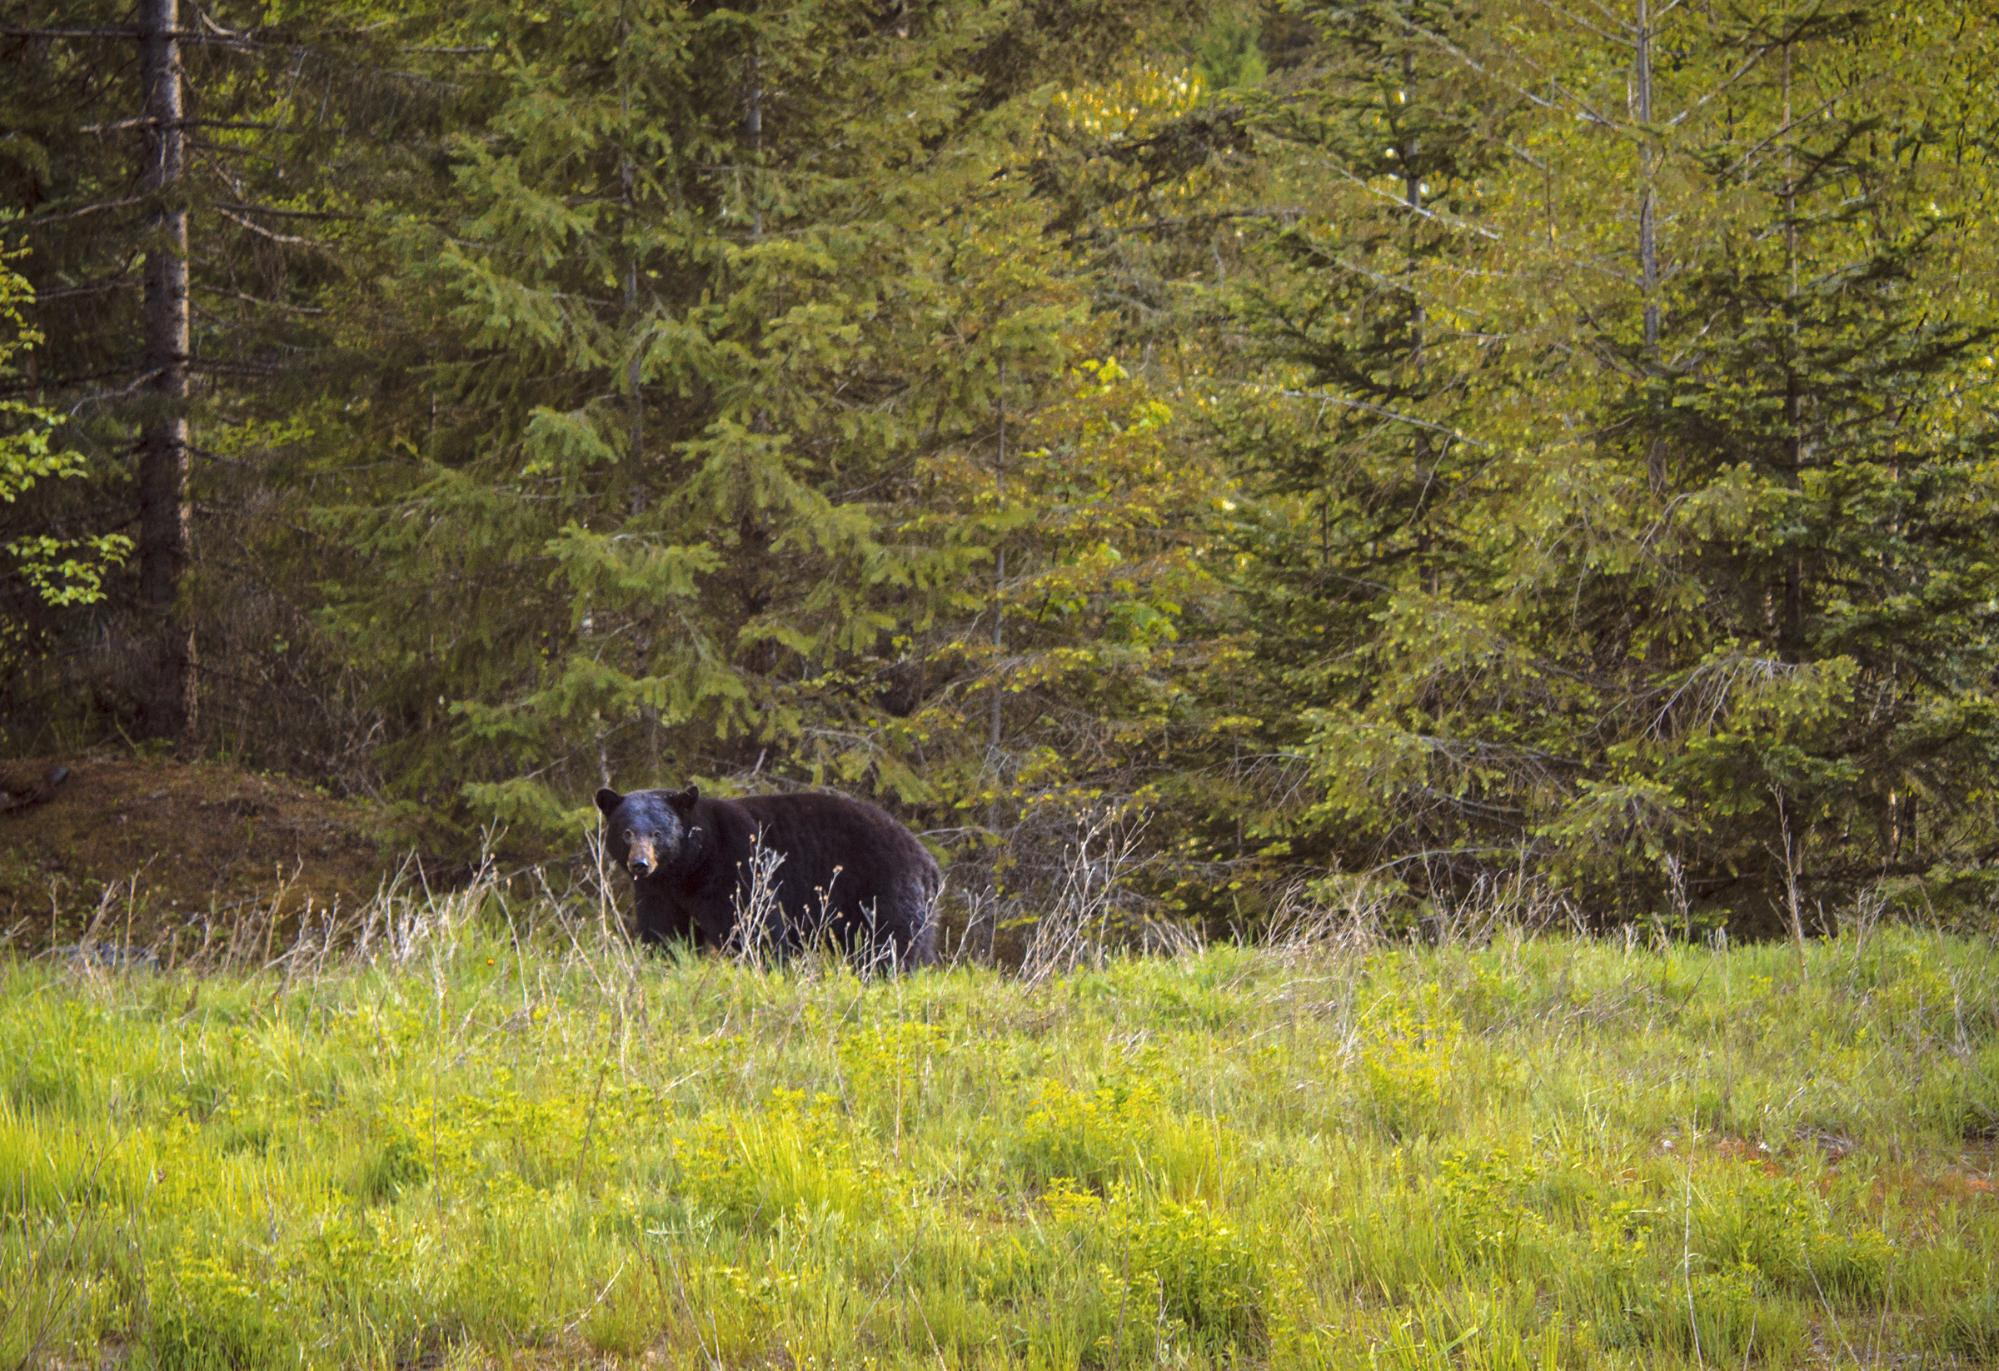 A black bear walks through tall grass at the edge of the forest.